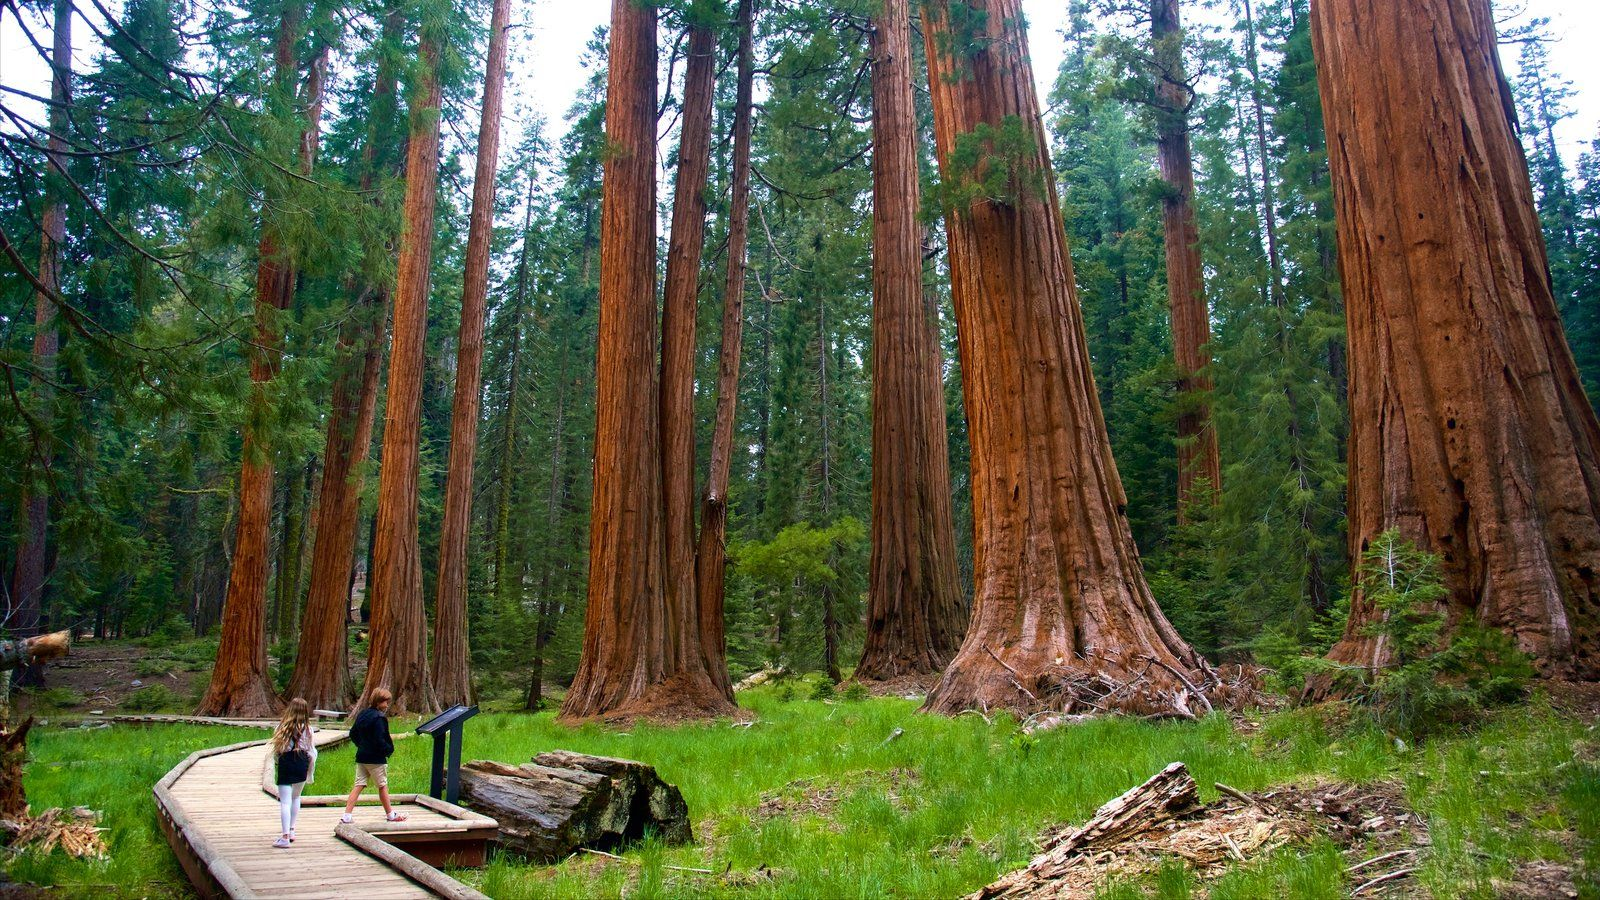 65 Giant Sequoia National Park Wallpapers   Download at WallpaperBro 1600x900